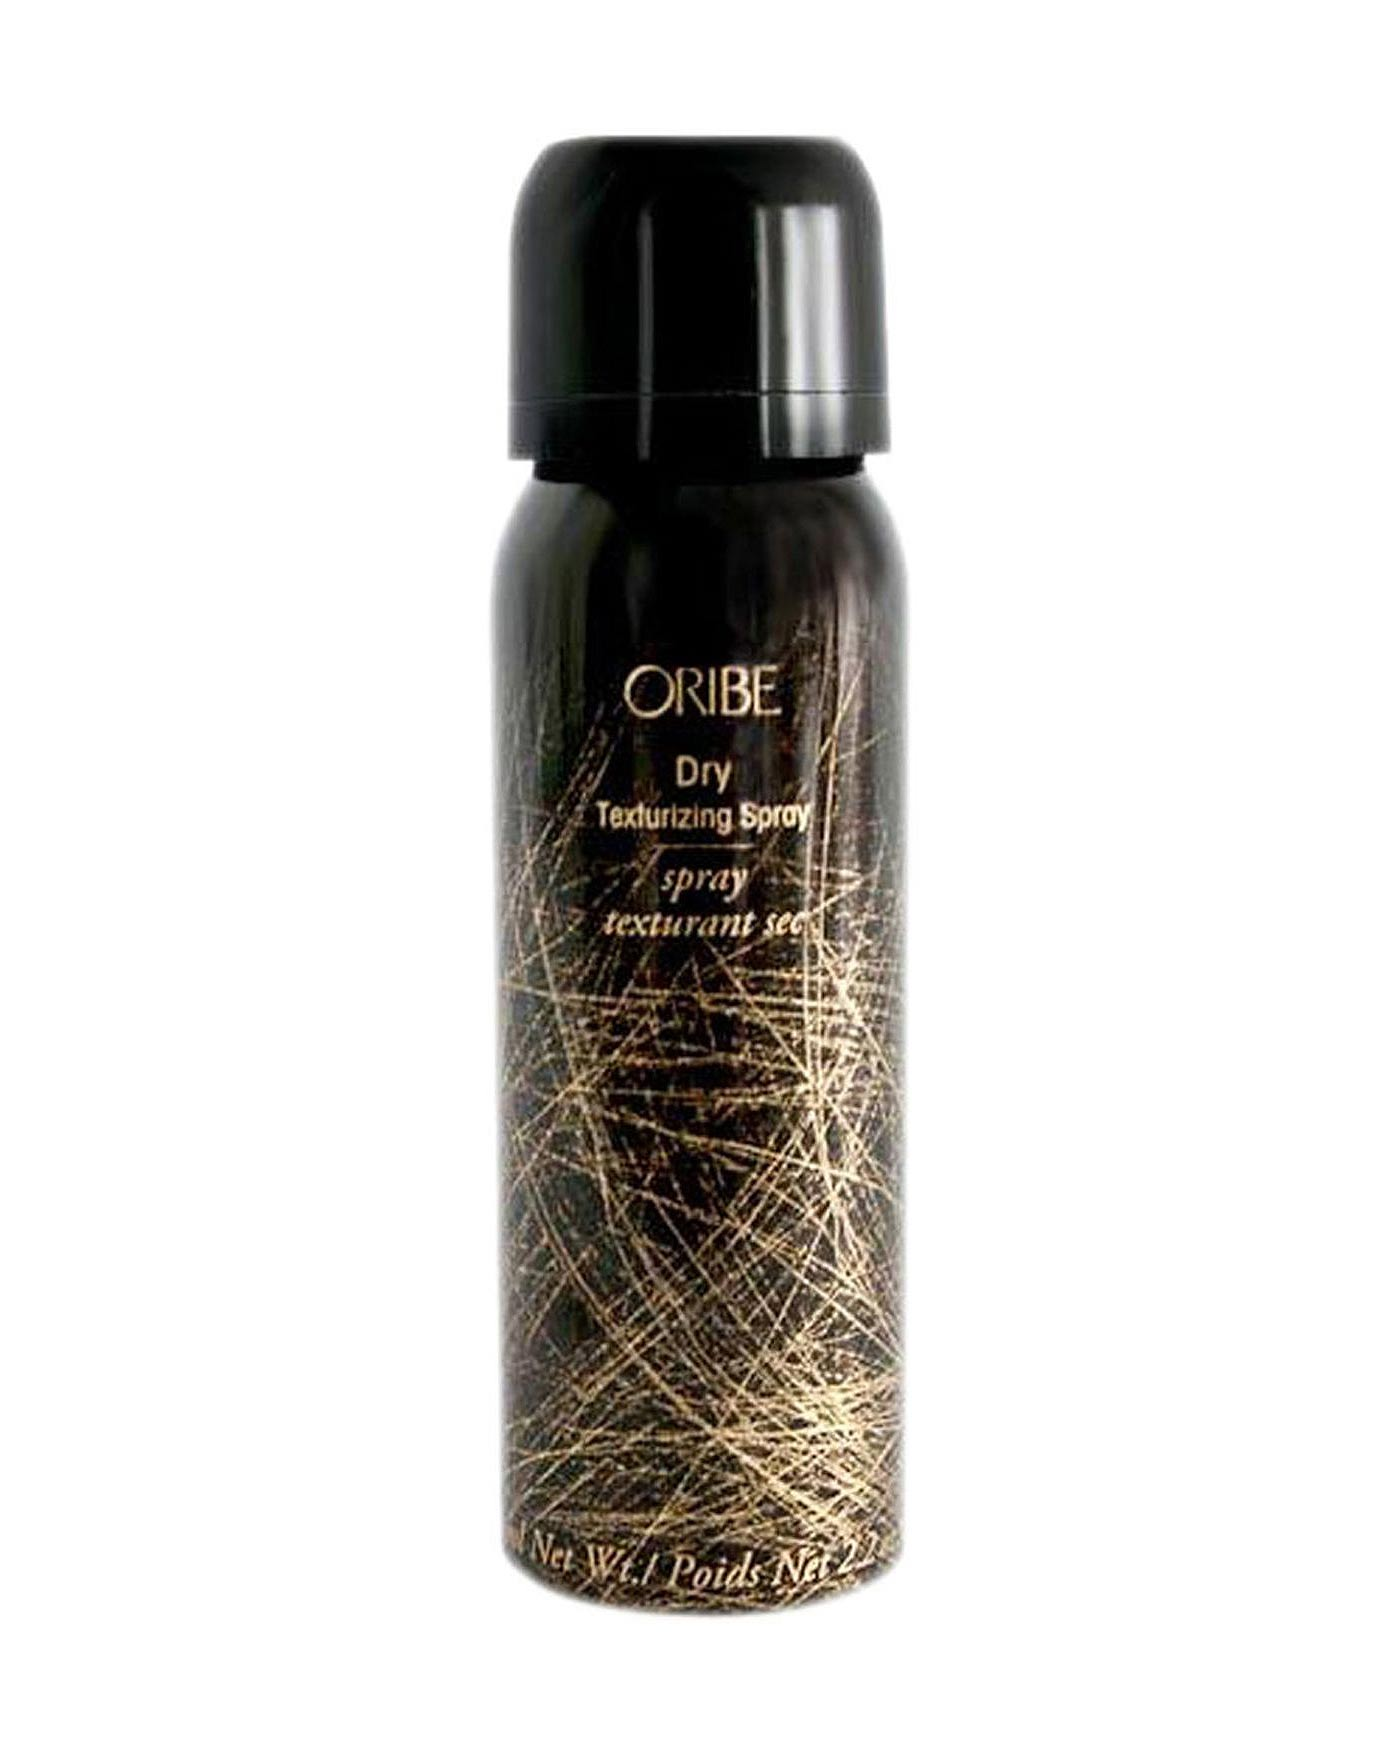 big-day-beauty-awards-oribe-dry-texturizing-spray-0216.jpg